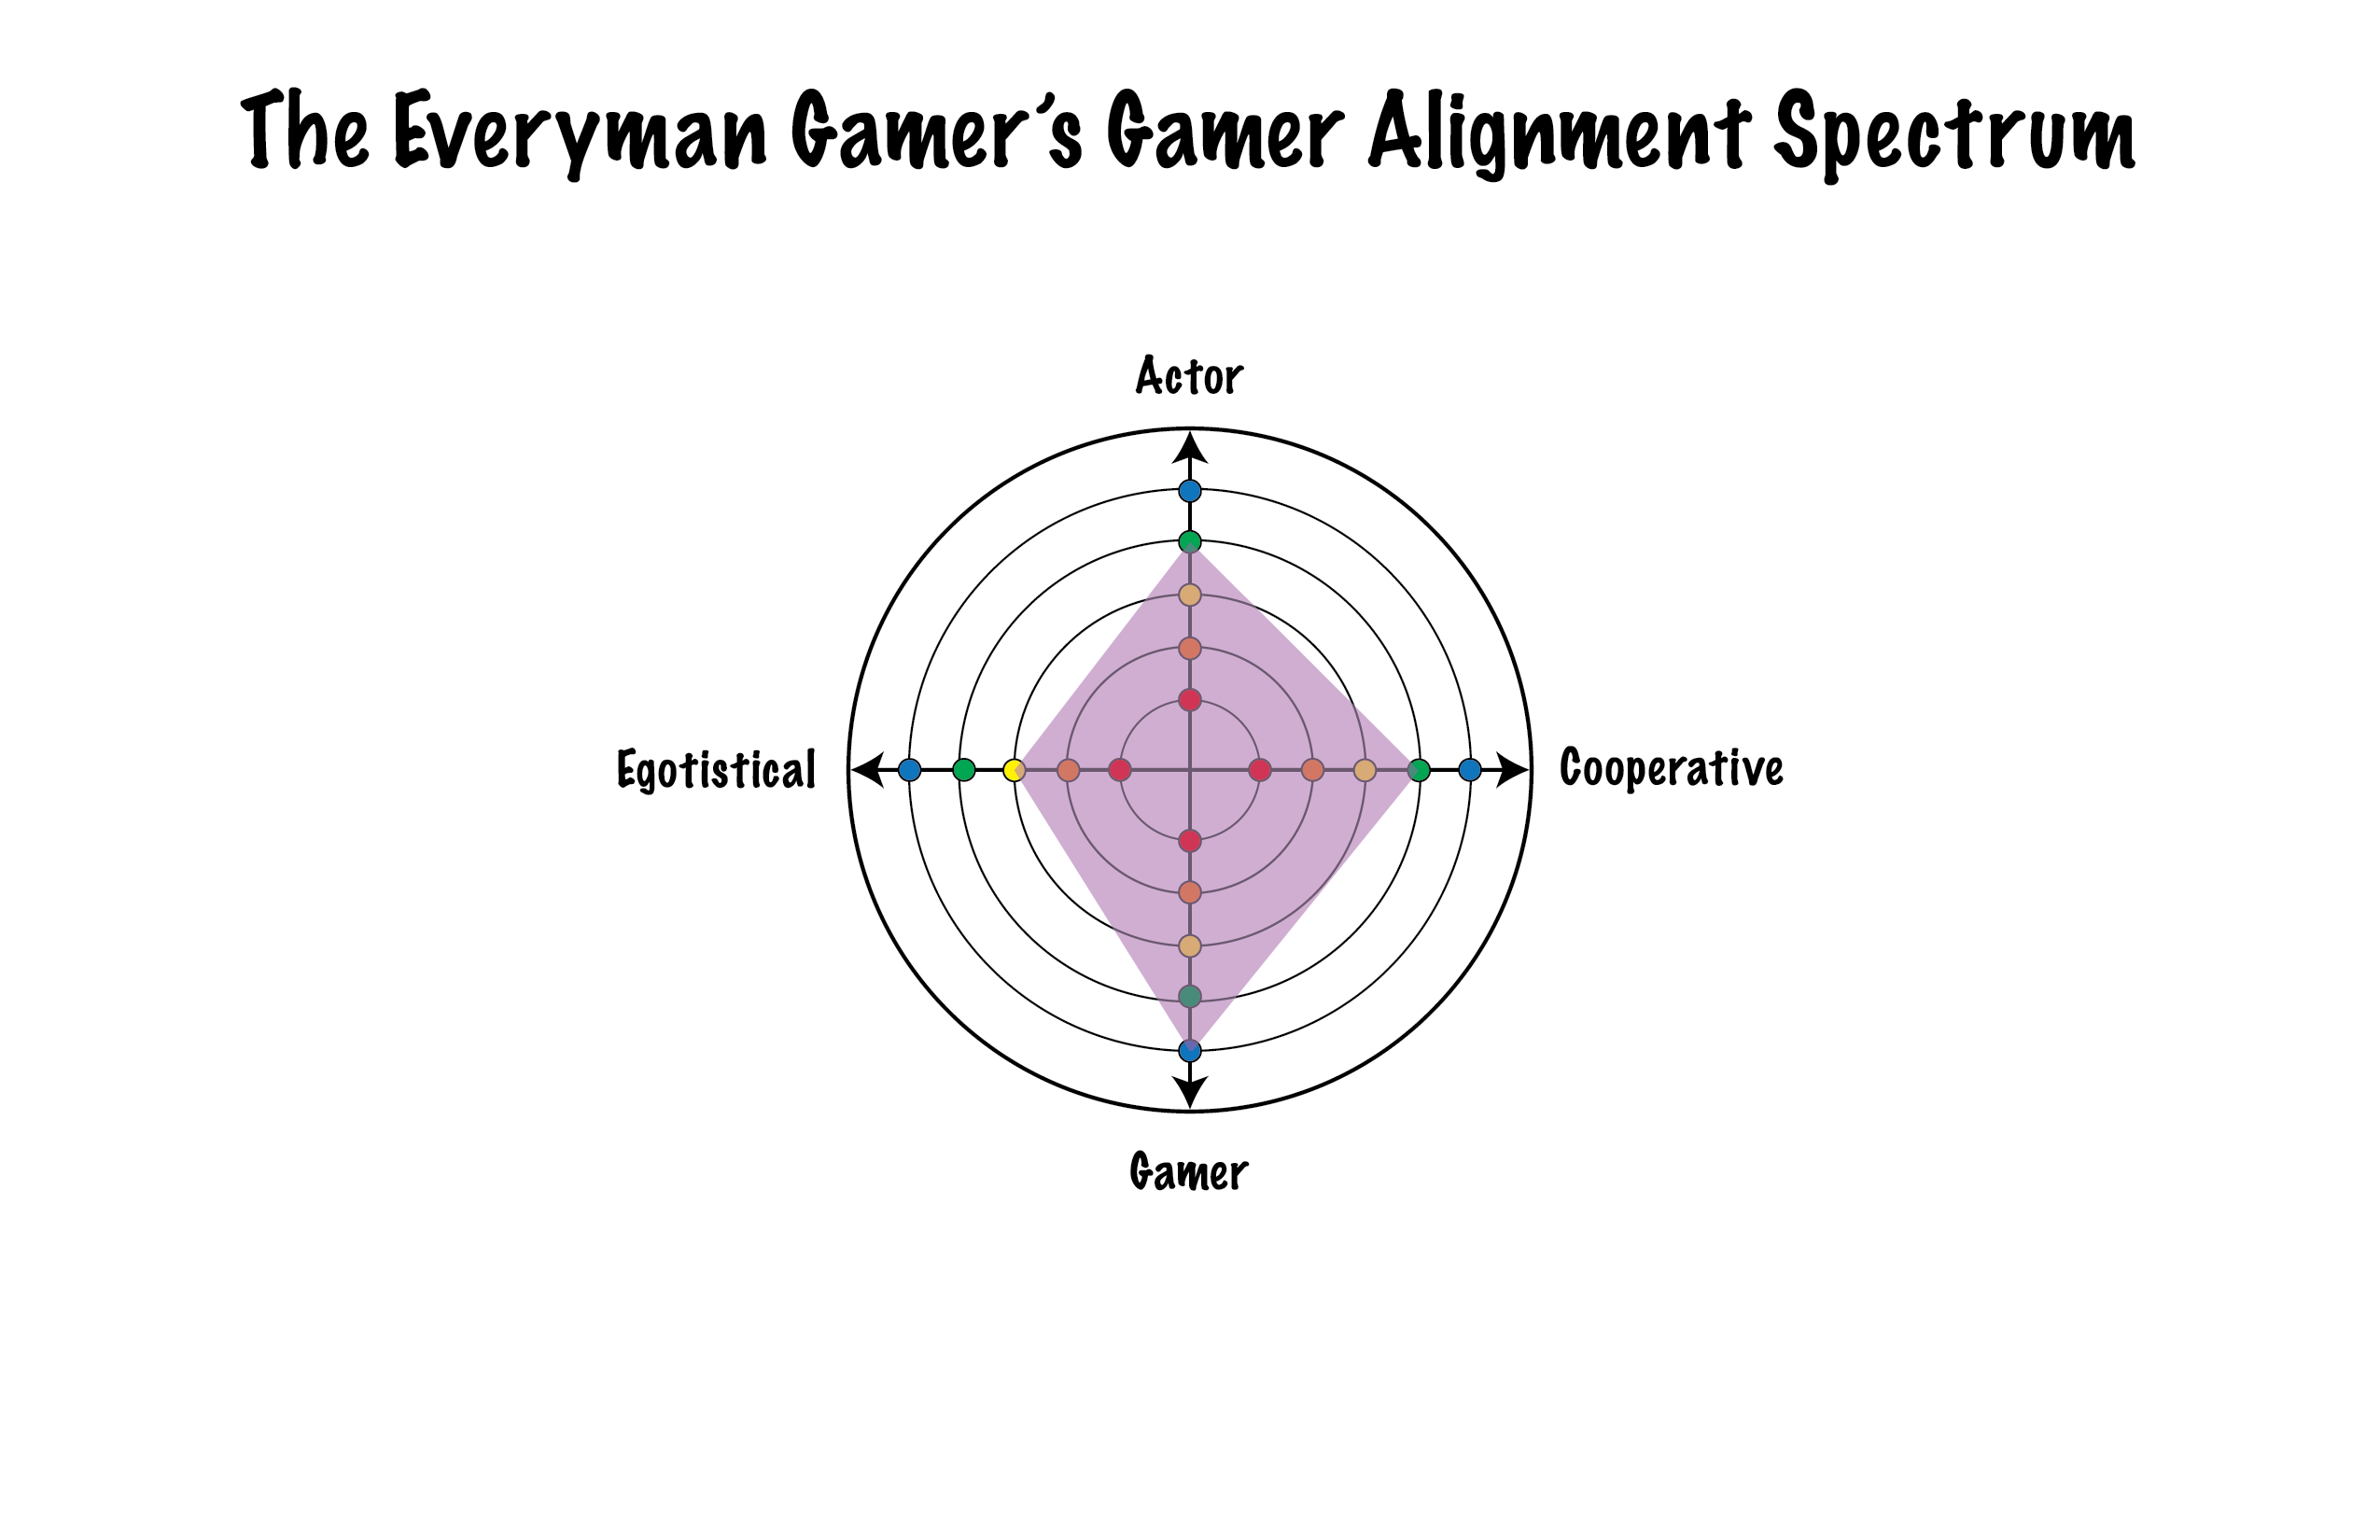 Alex's Gamer Alignment Spectrum